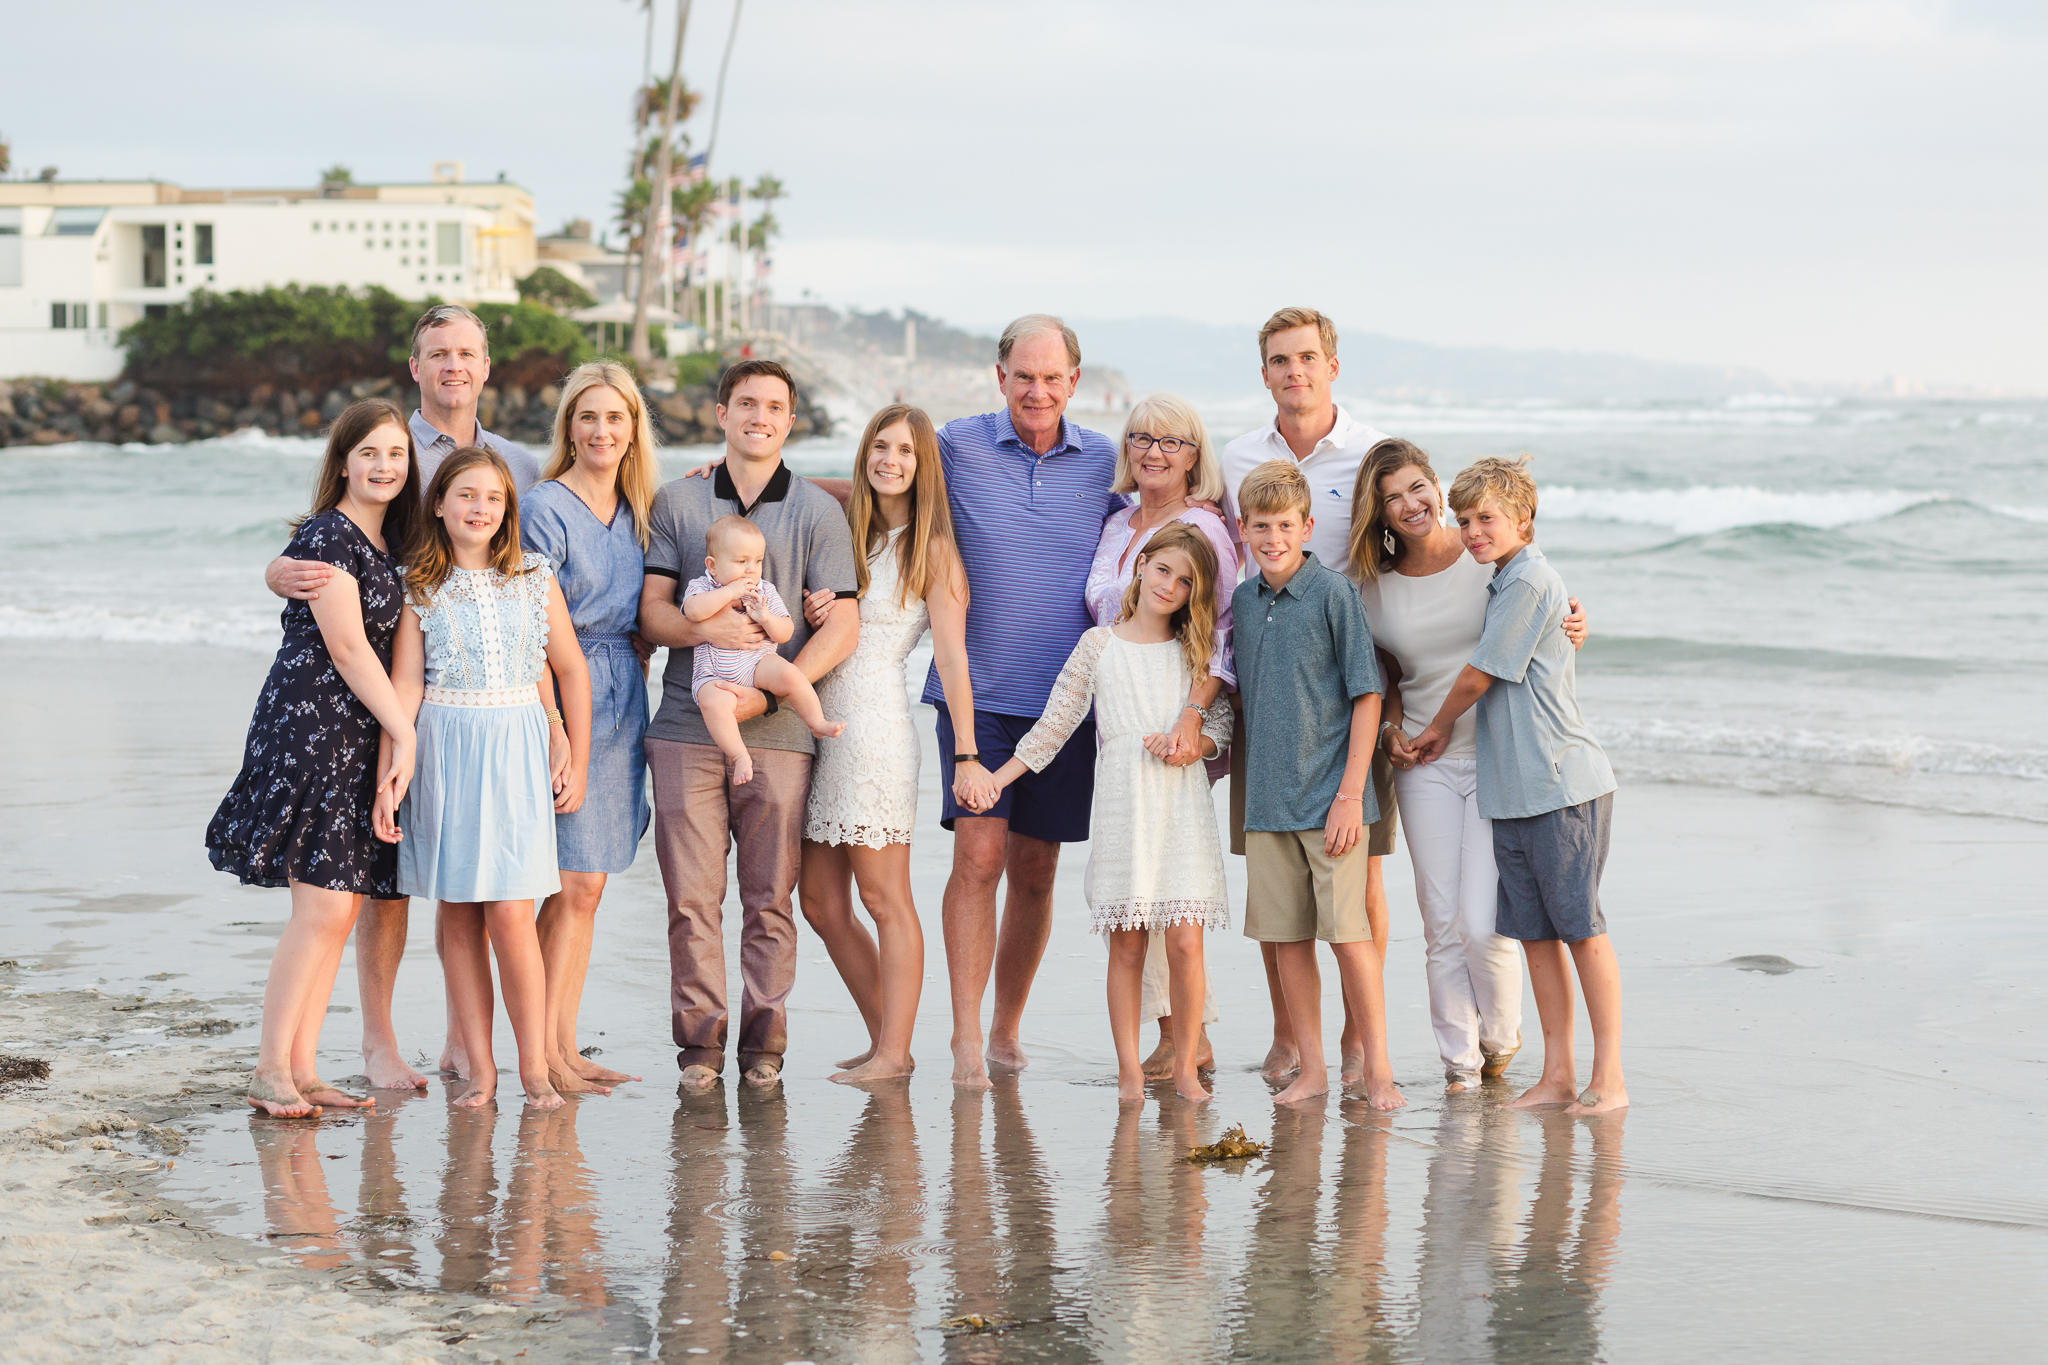 Extended family photography in Del Mar, CA while on vacation in San Diego.